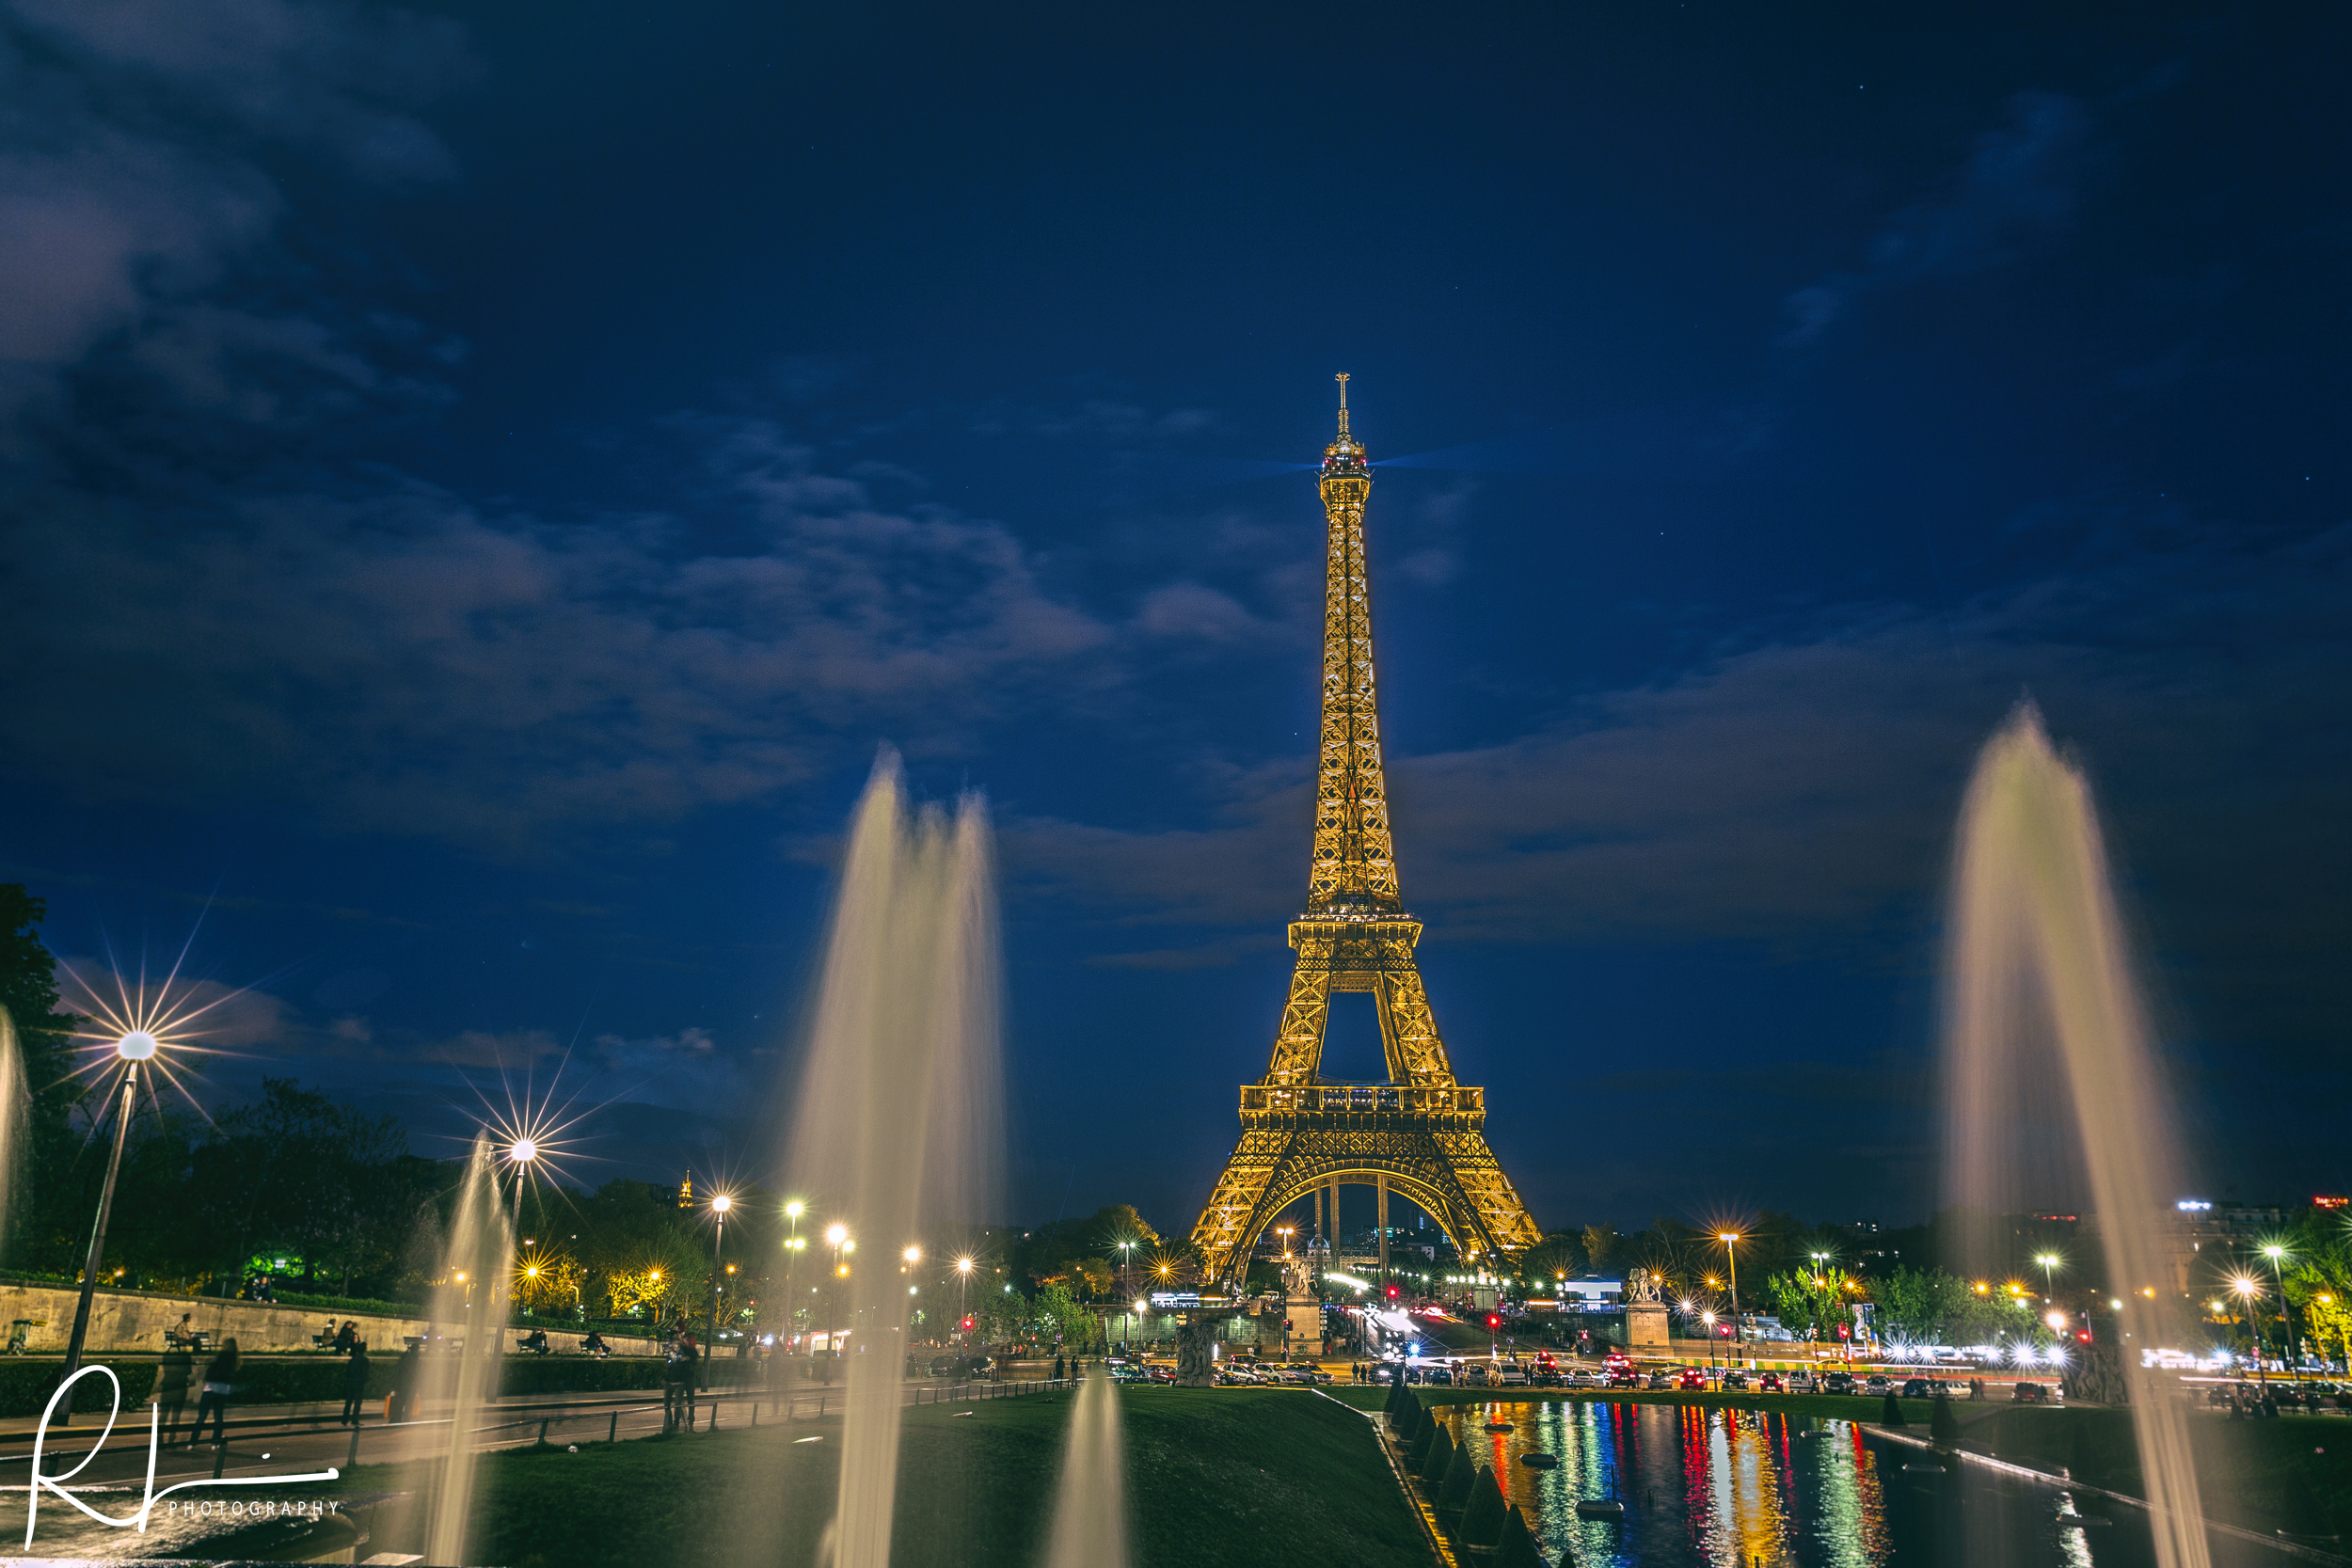 Eiffel Tower by the fountains